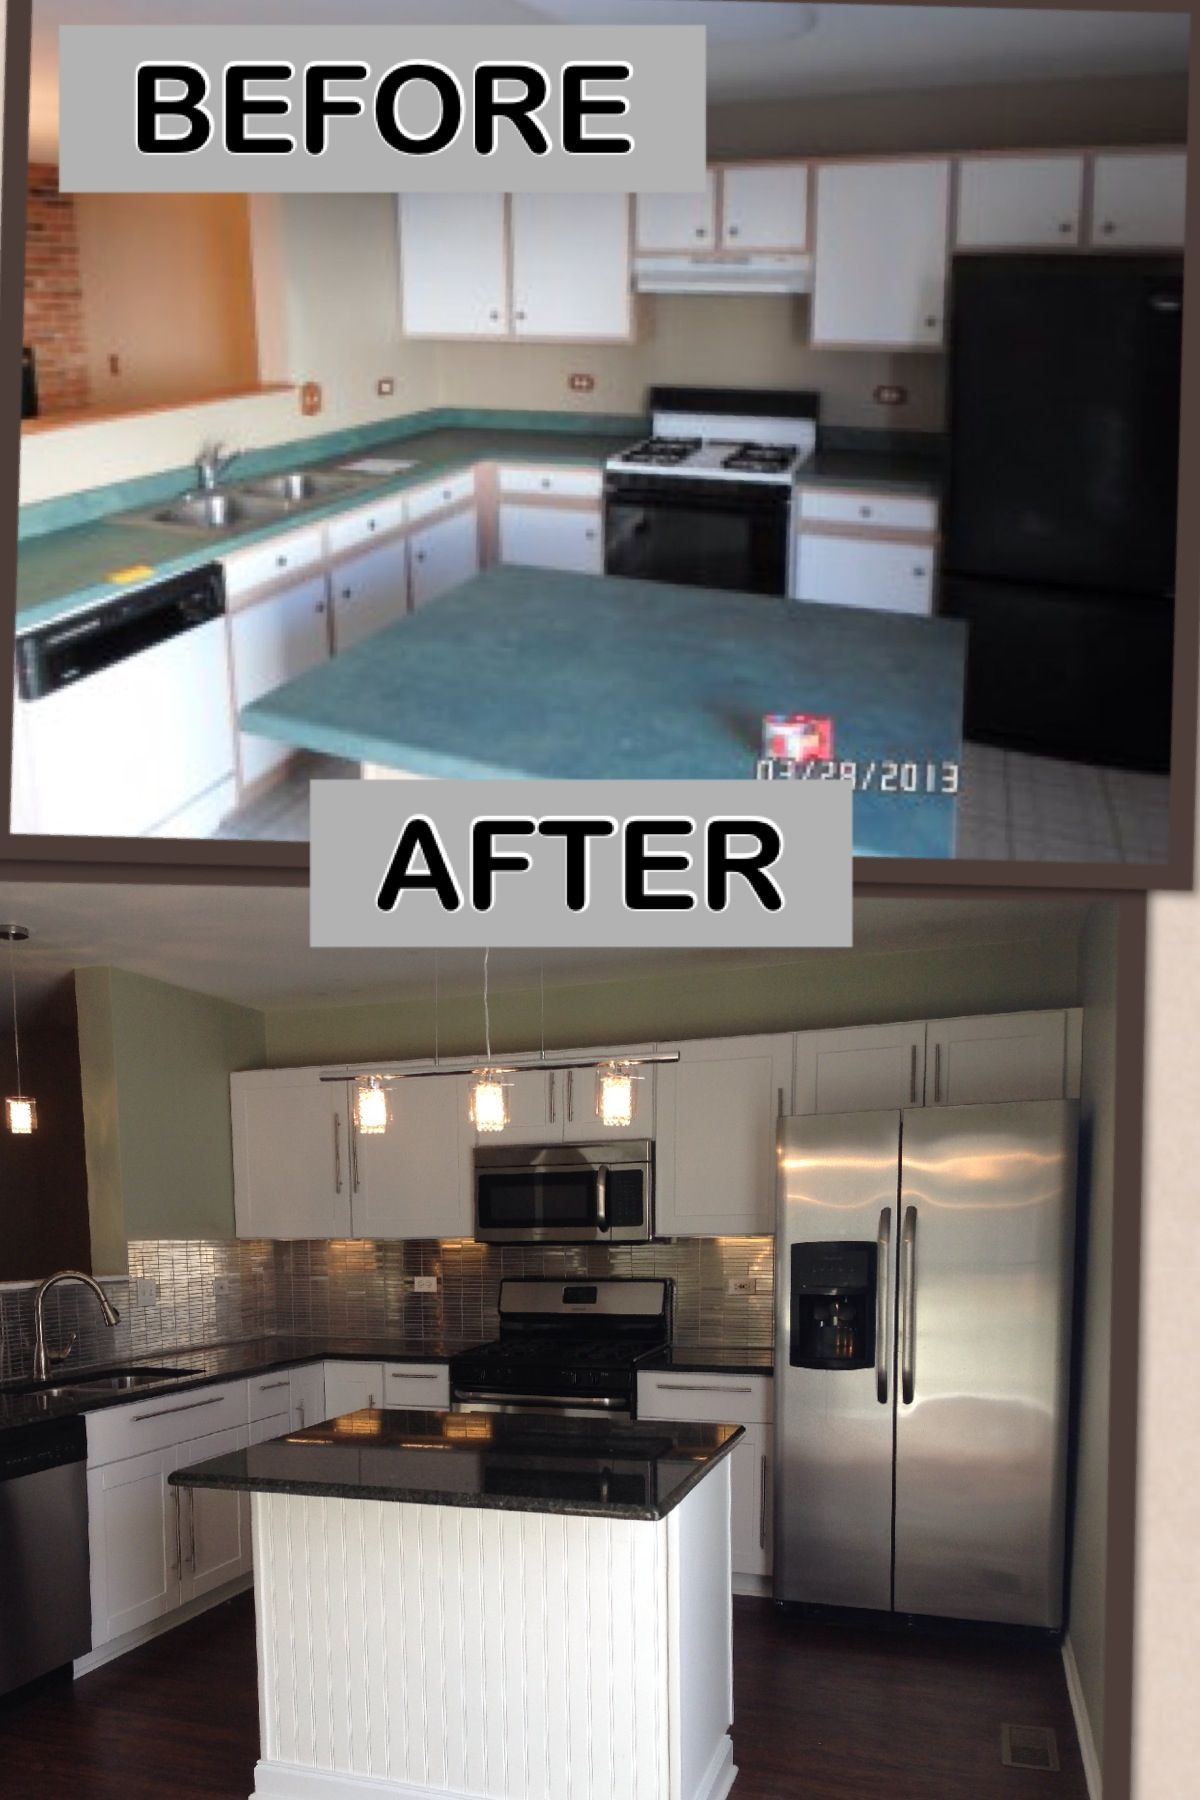 Kitchen remodel on a budget everything brand new for for Home depot bathroom remodel ideas